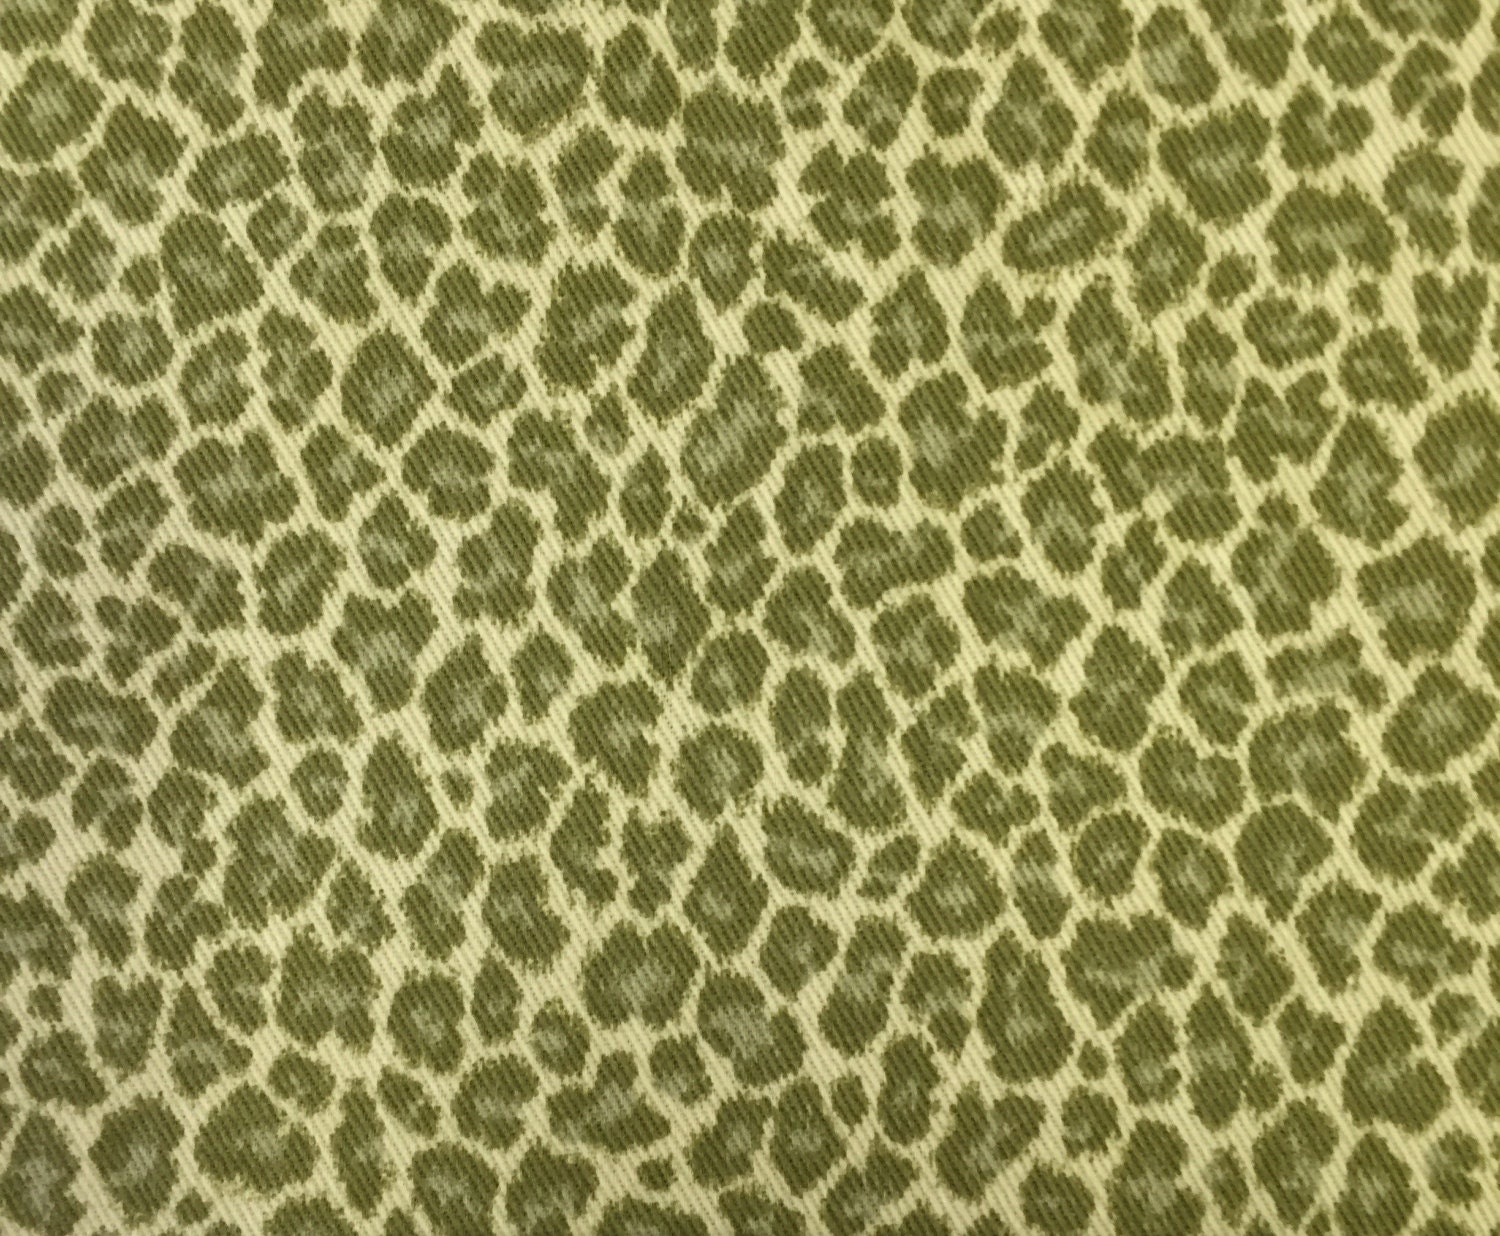 Olive Green Leopard Print Upholstery Fabric By The Yard